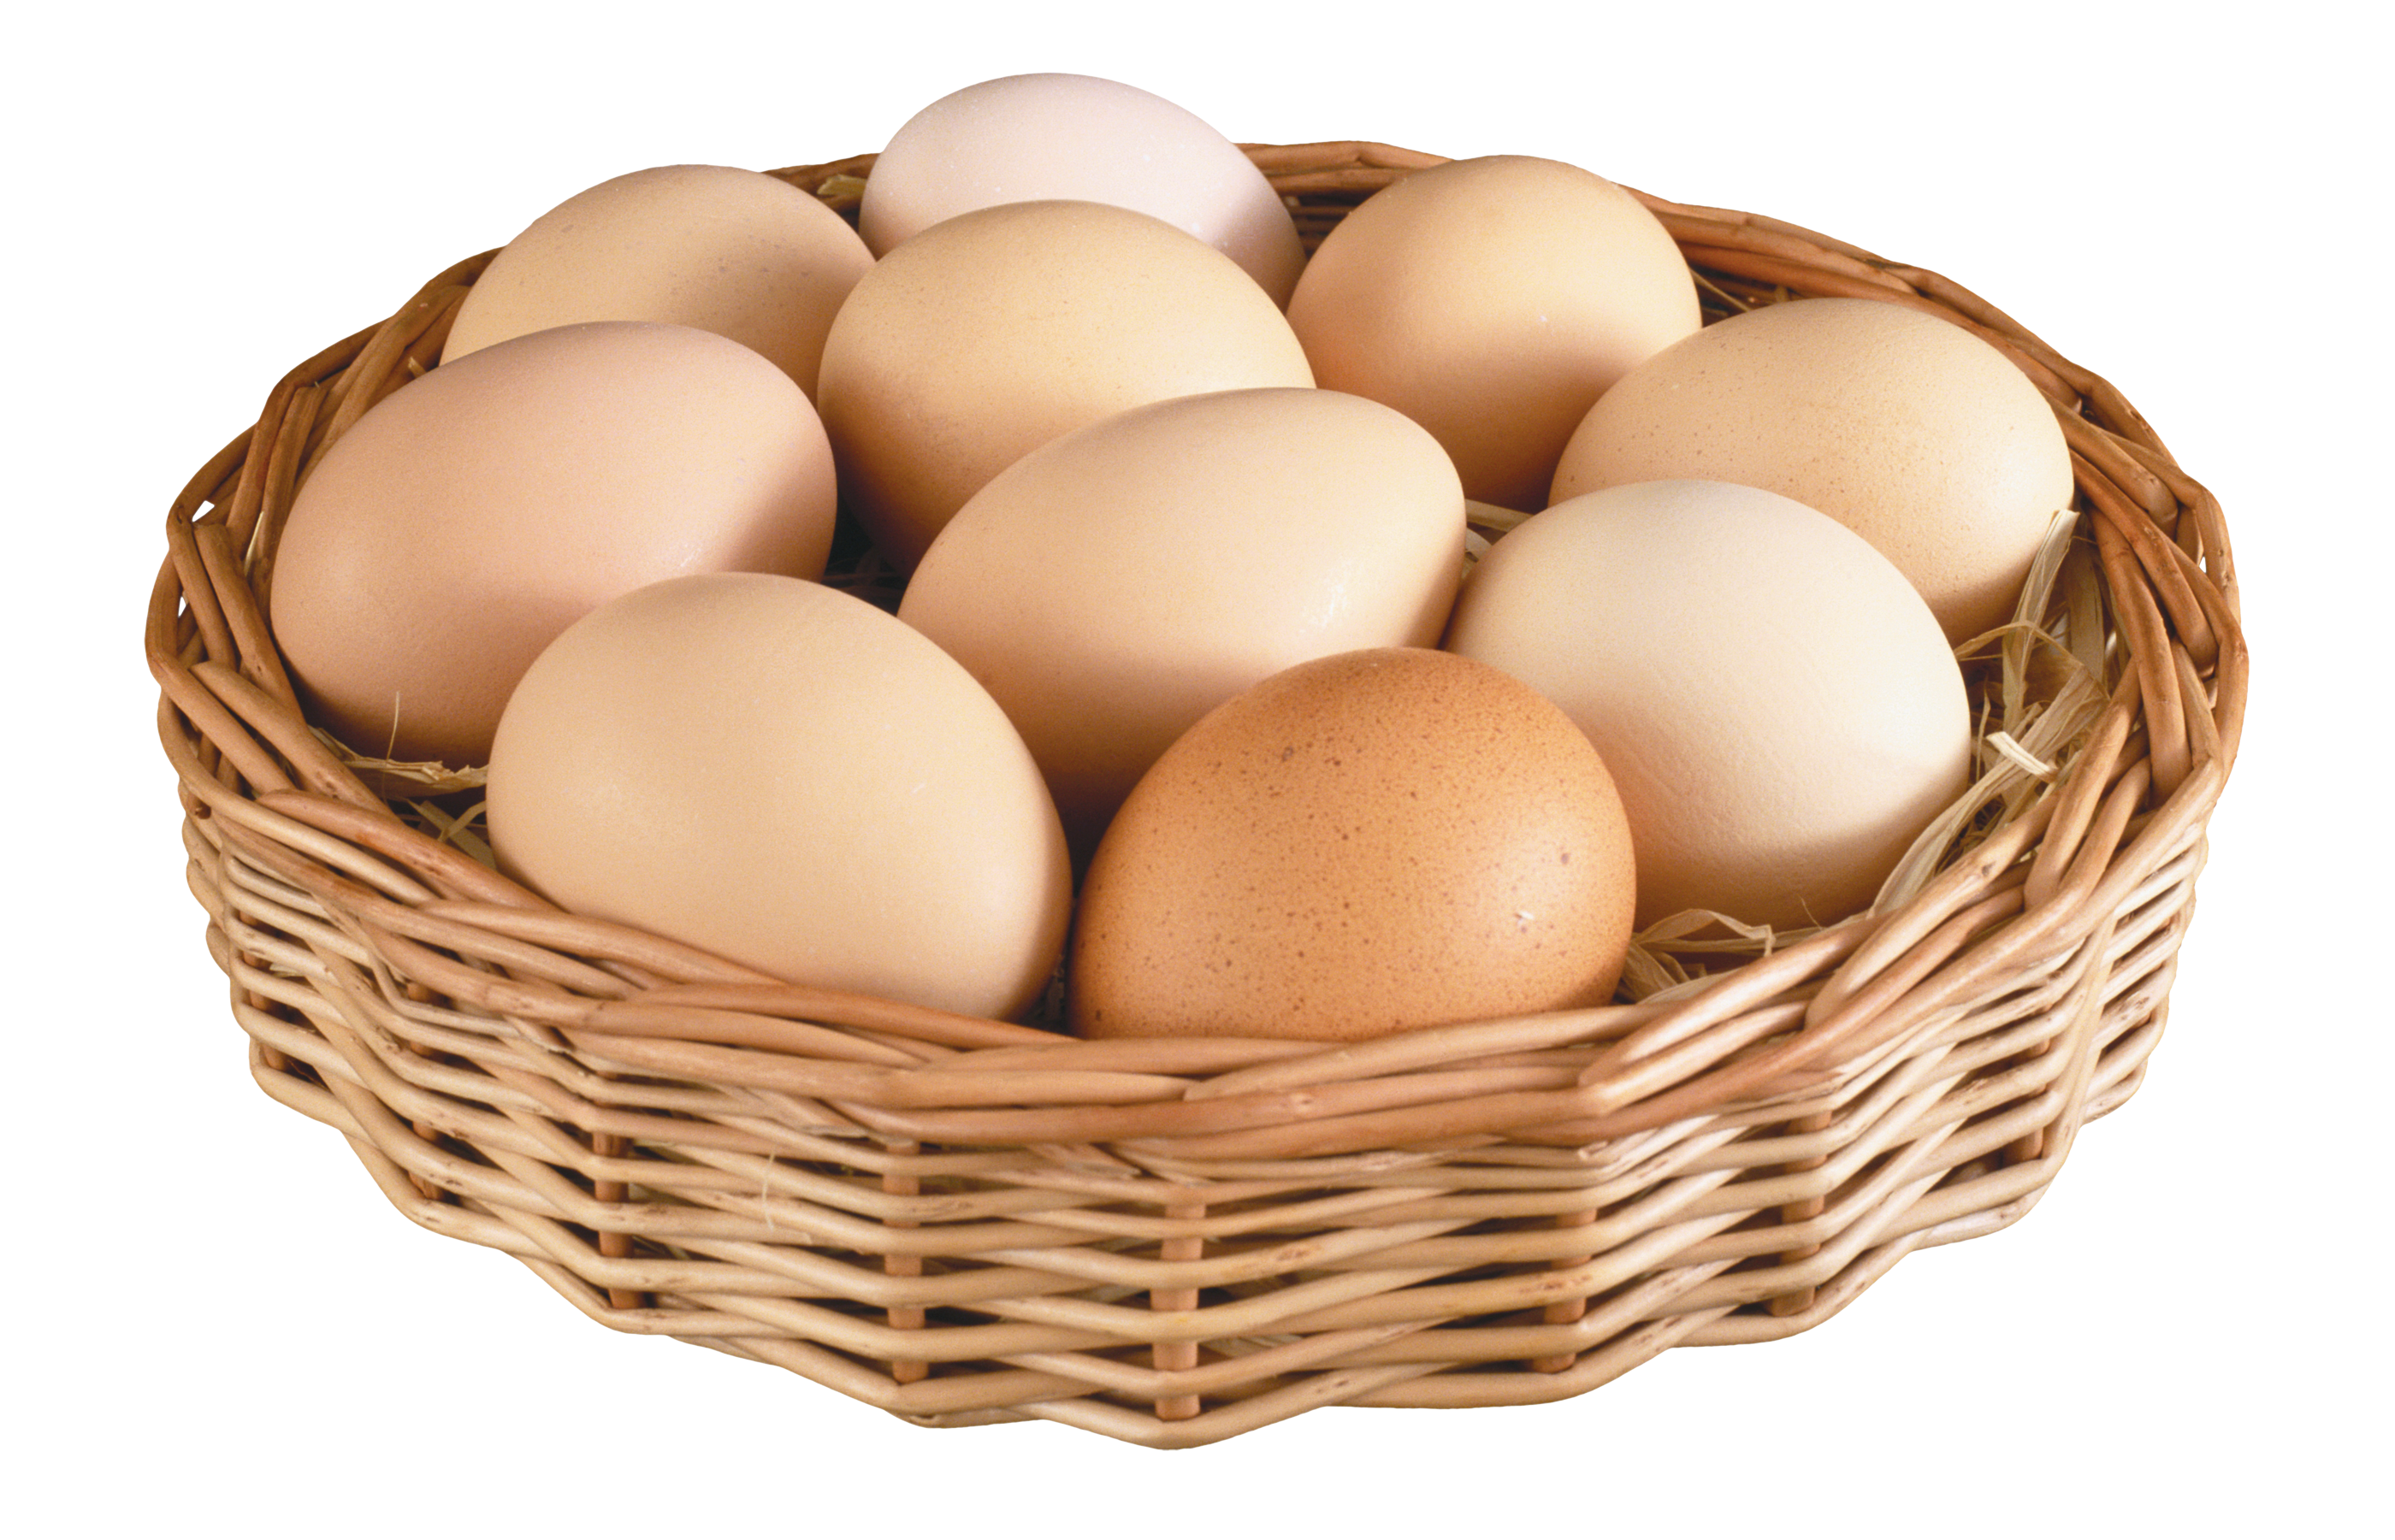 Eggs png image purepng. Meat clipart basket